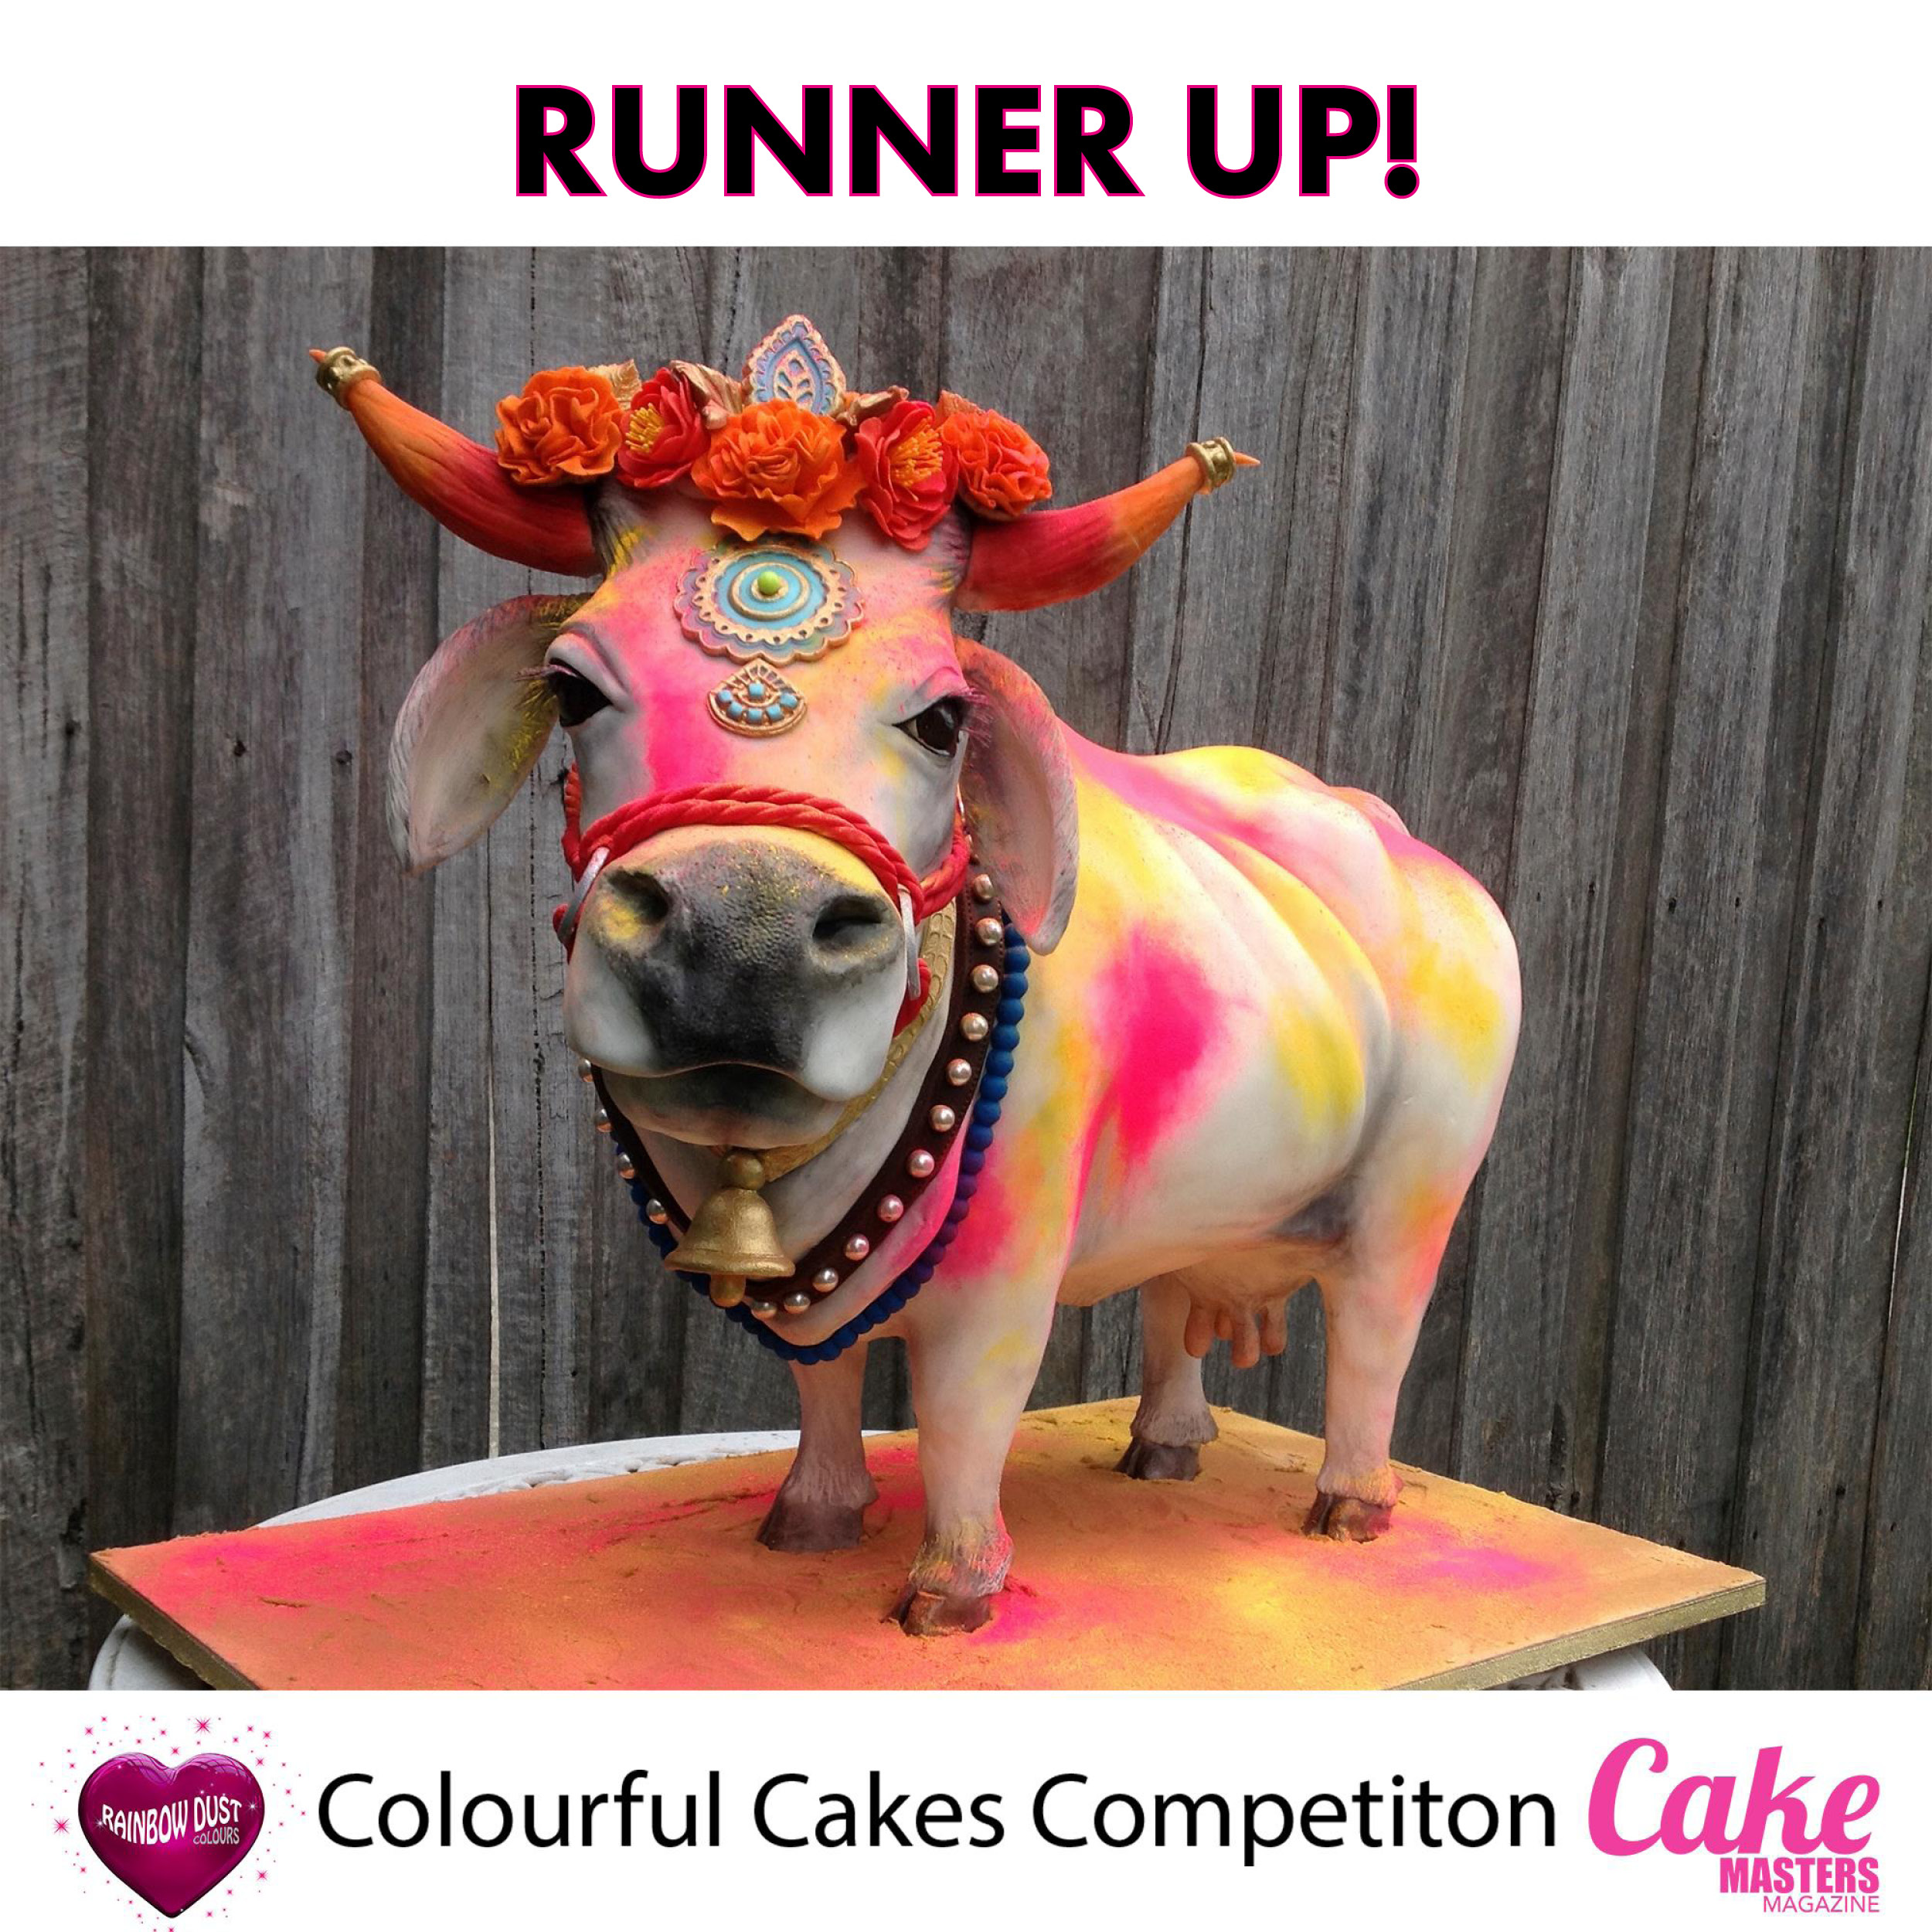 Colourful Cakes Comp FB - Runner Up Penny Bunz, Cleopatra Cakes